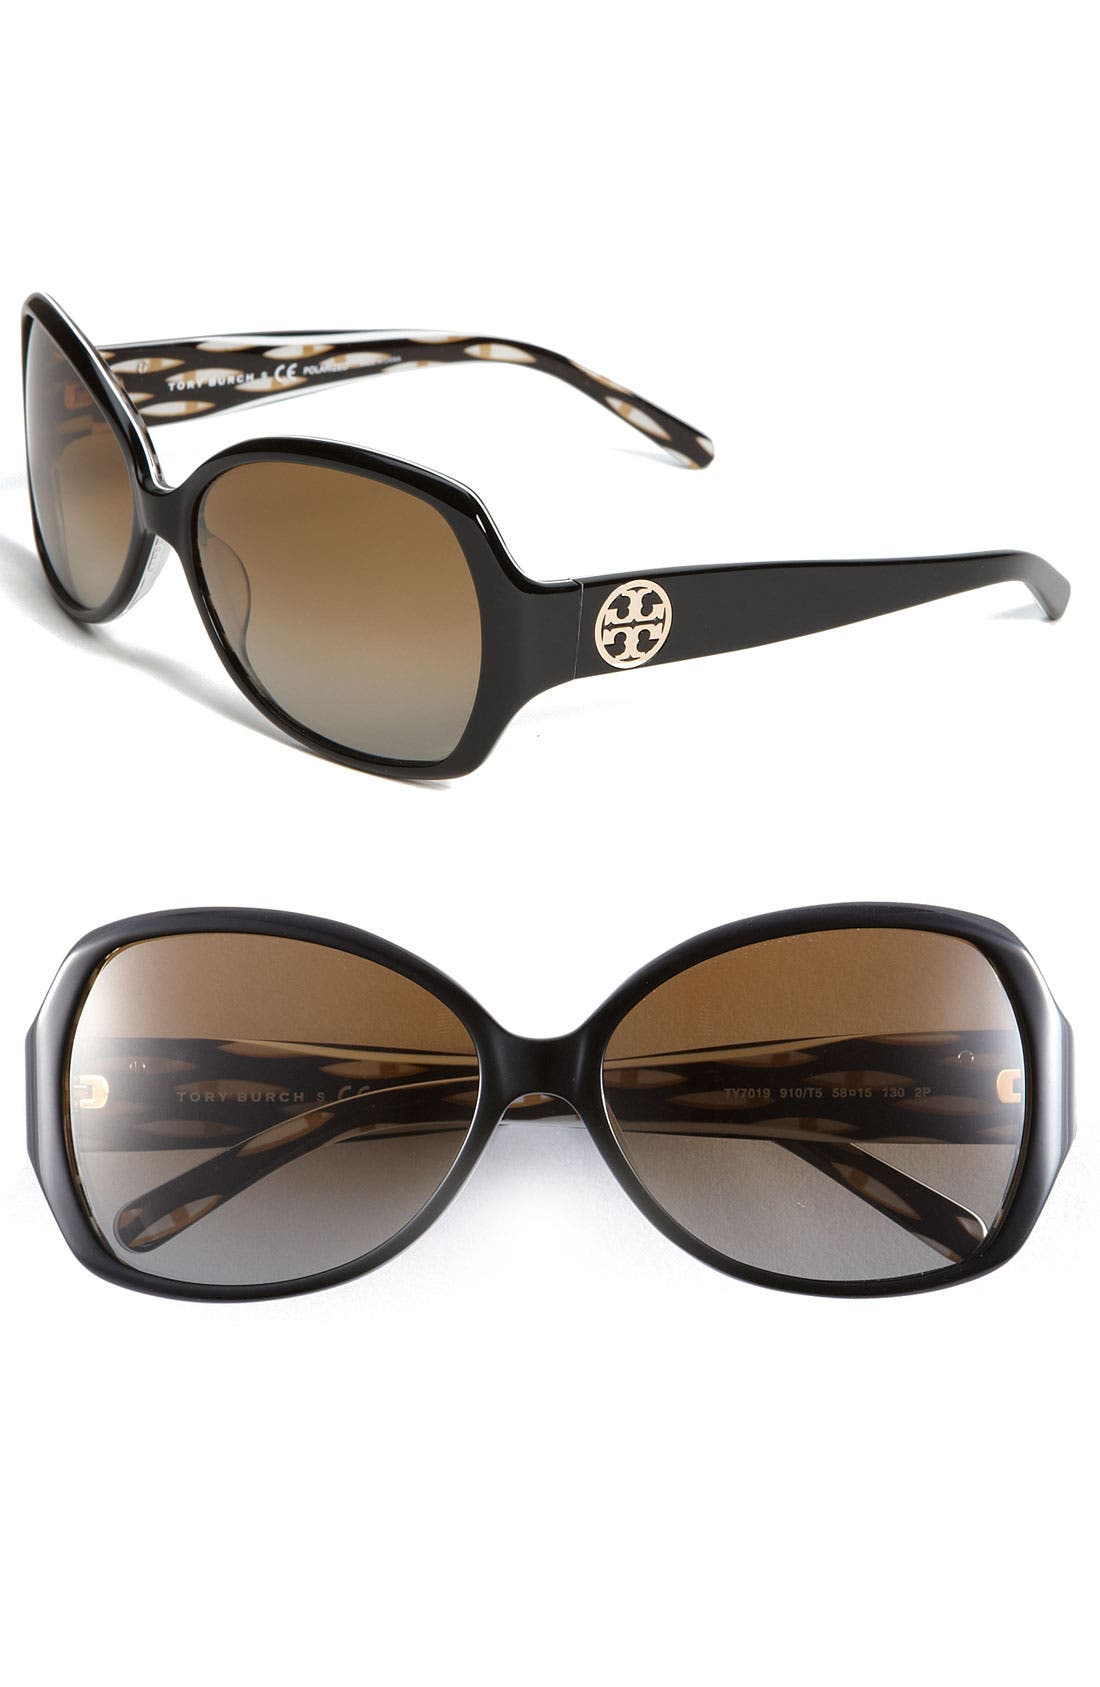 Main Image - Tory Burch 'Large' Butterfly 58mm Polarized Sunglasses